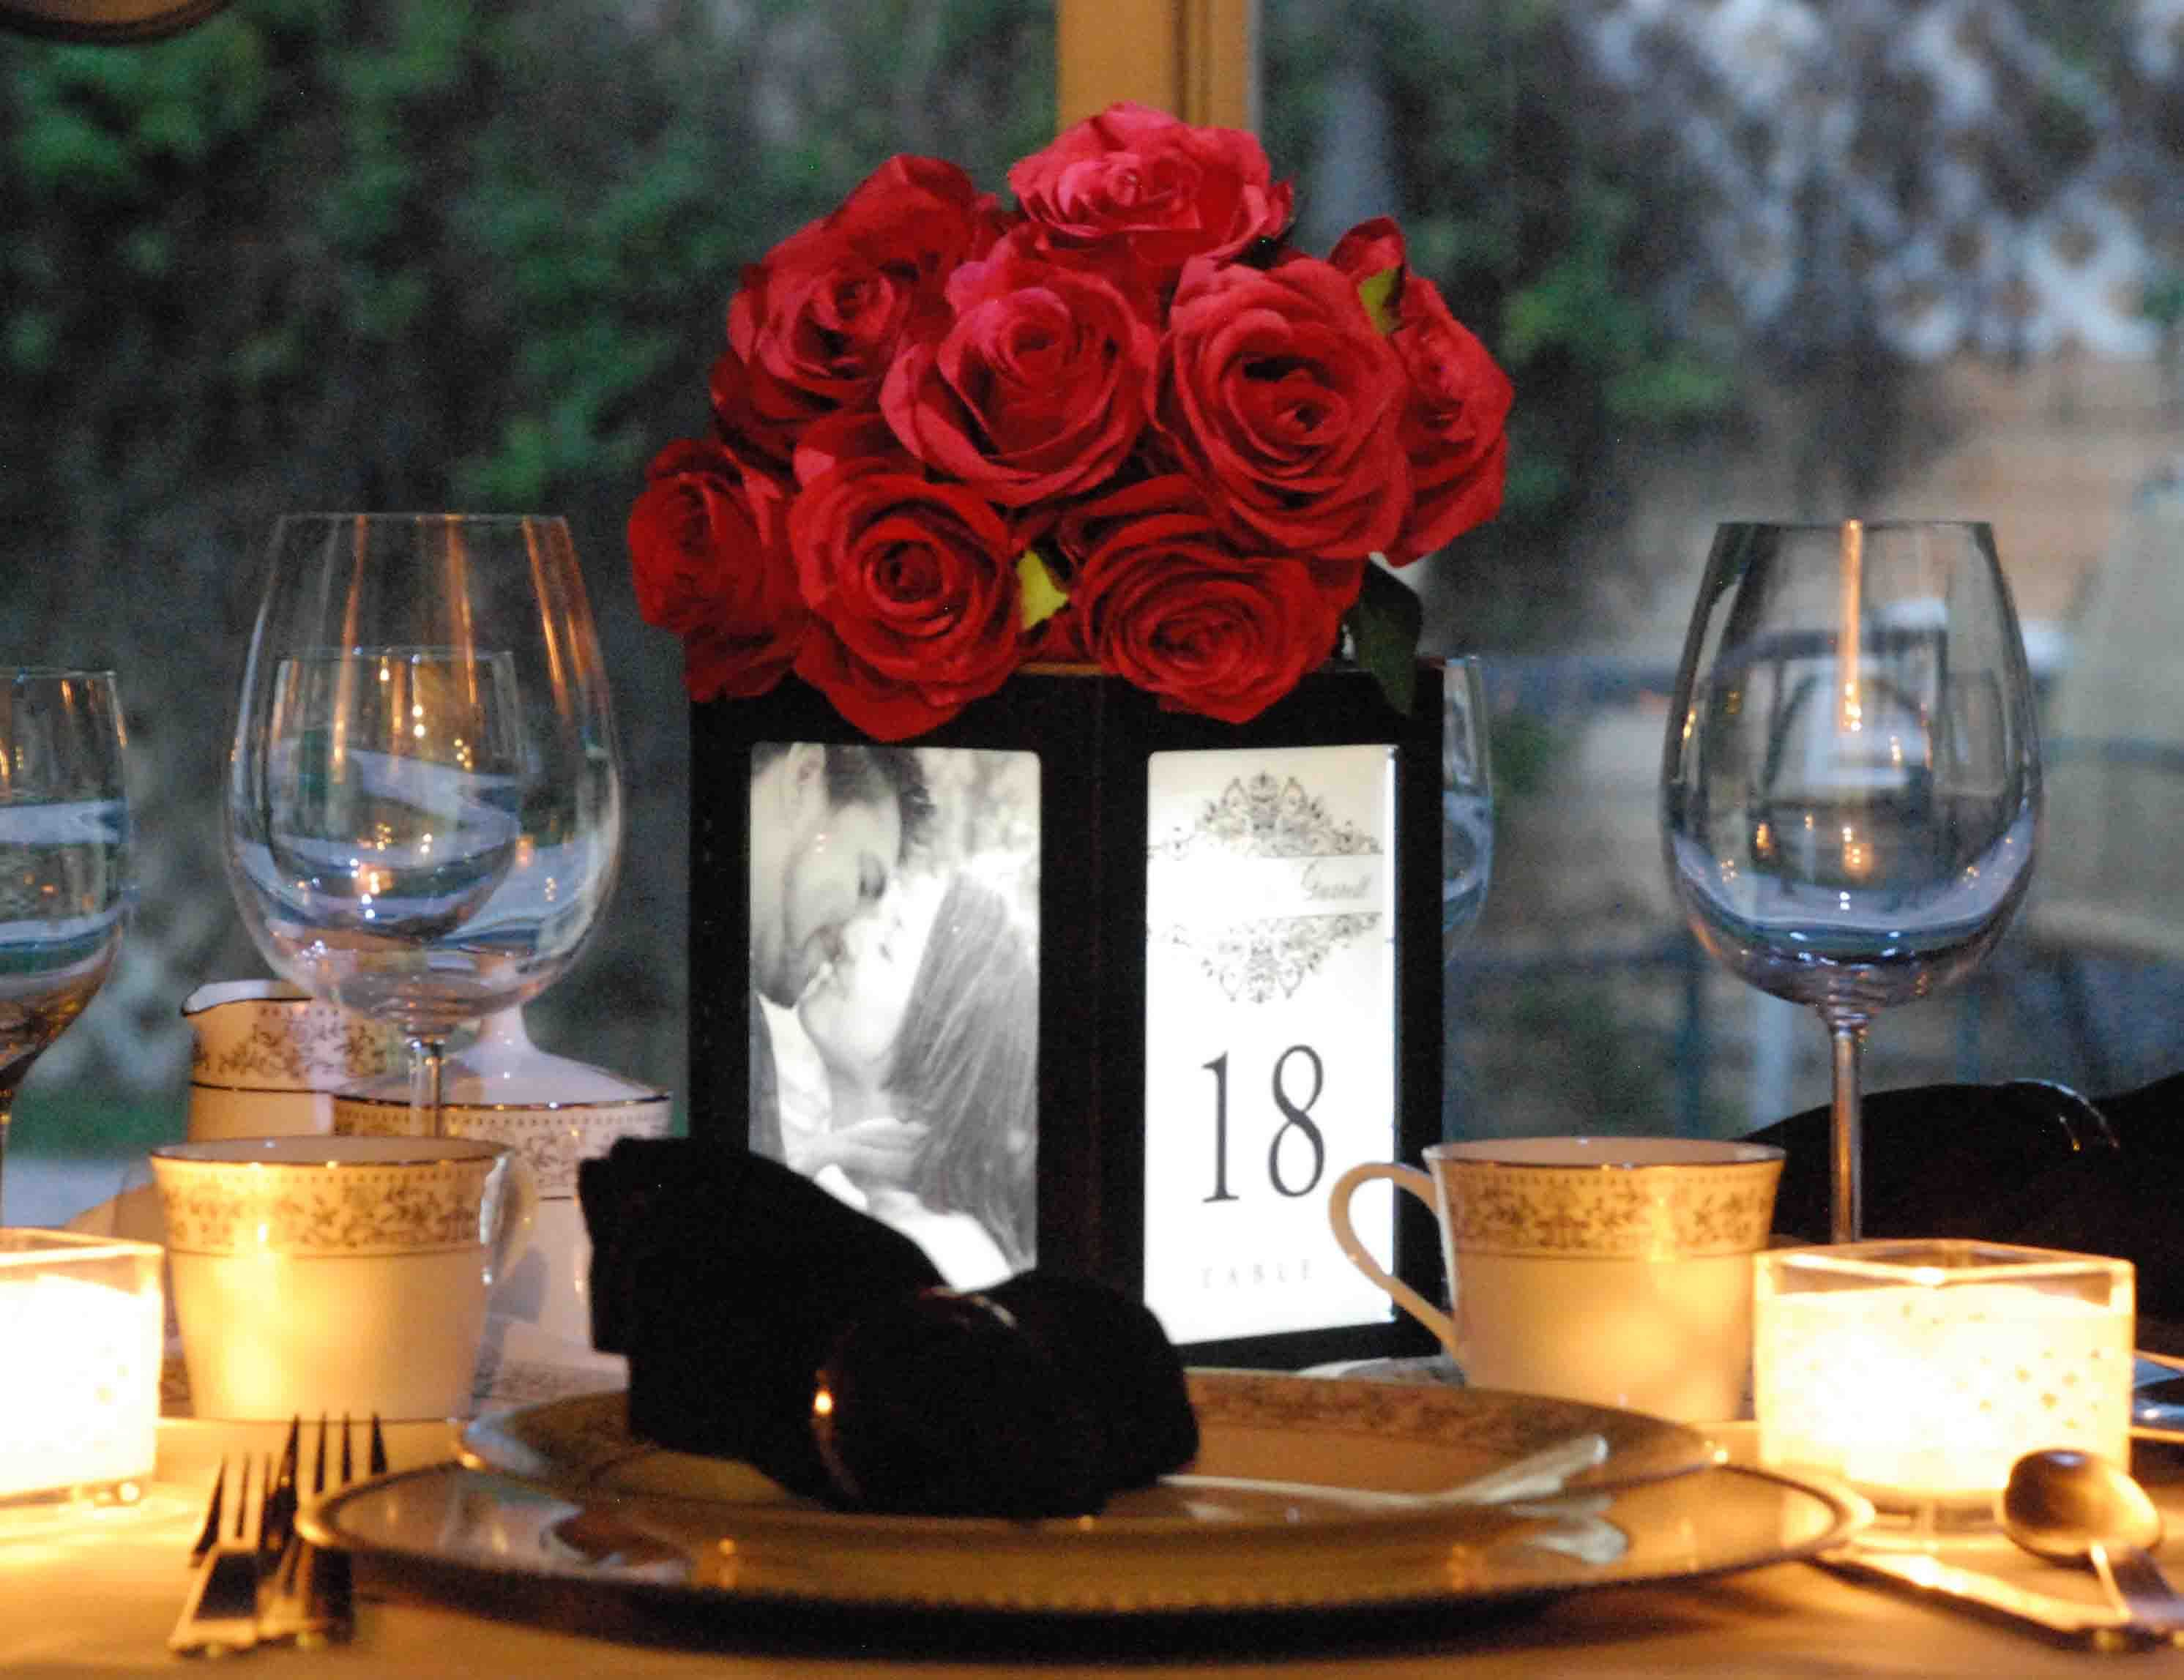 pictures of inexpensive wedding centerpieces - Bing Images